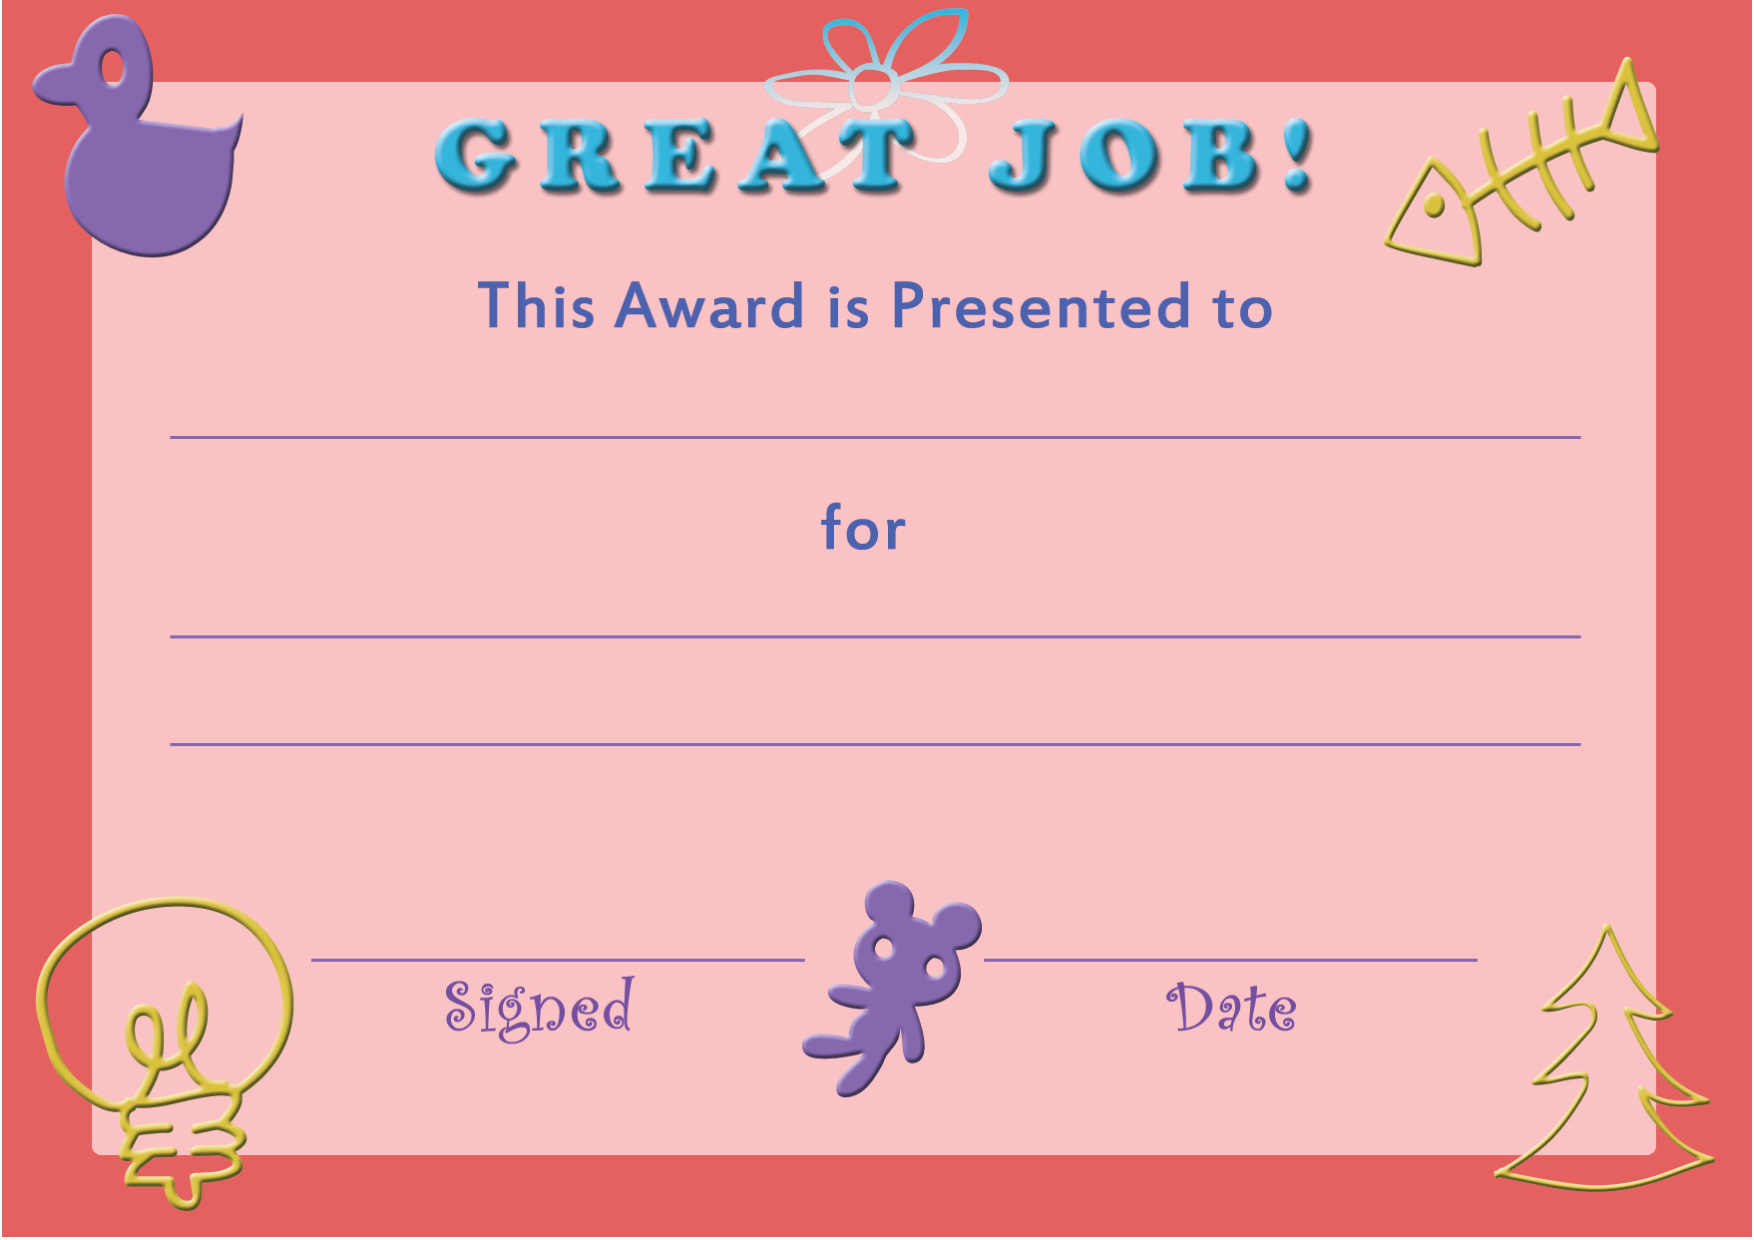 Printable Certificate Of Achievement Template Lovely Printable Template Certificate Achievement for Kids In